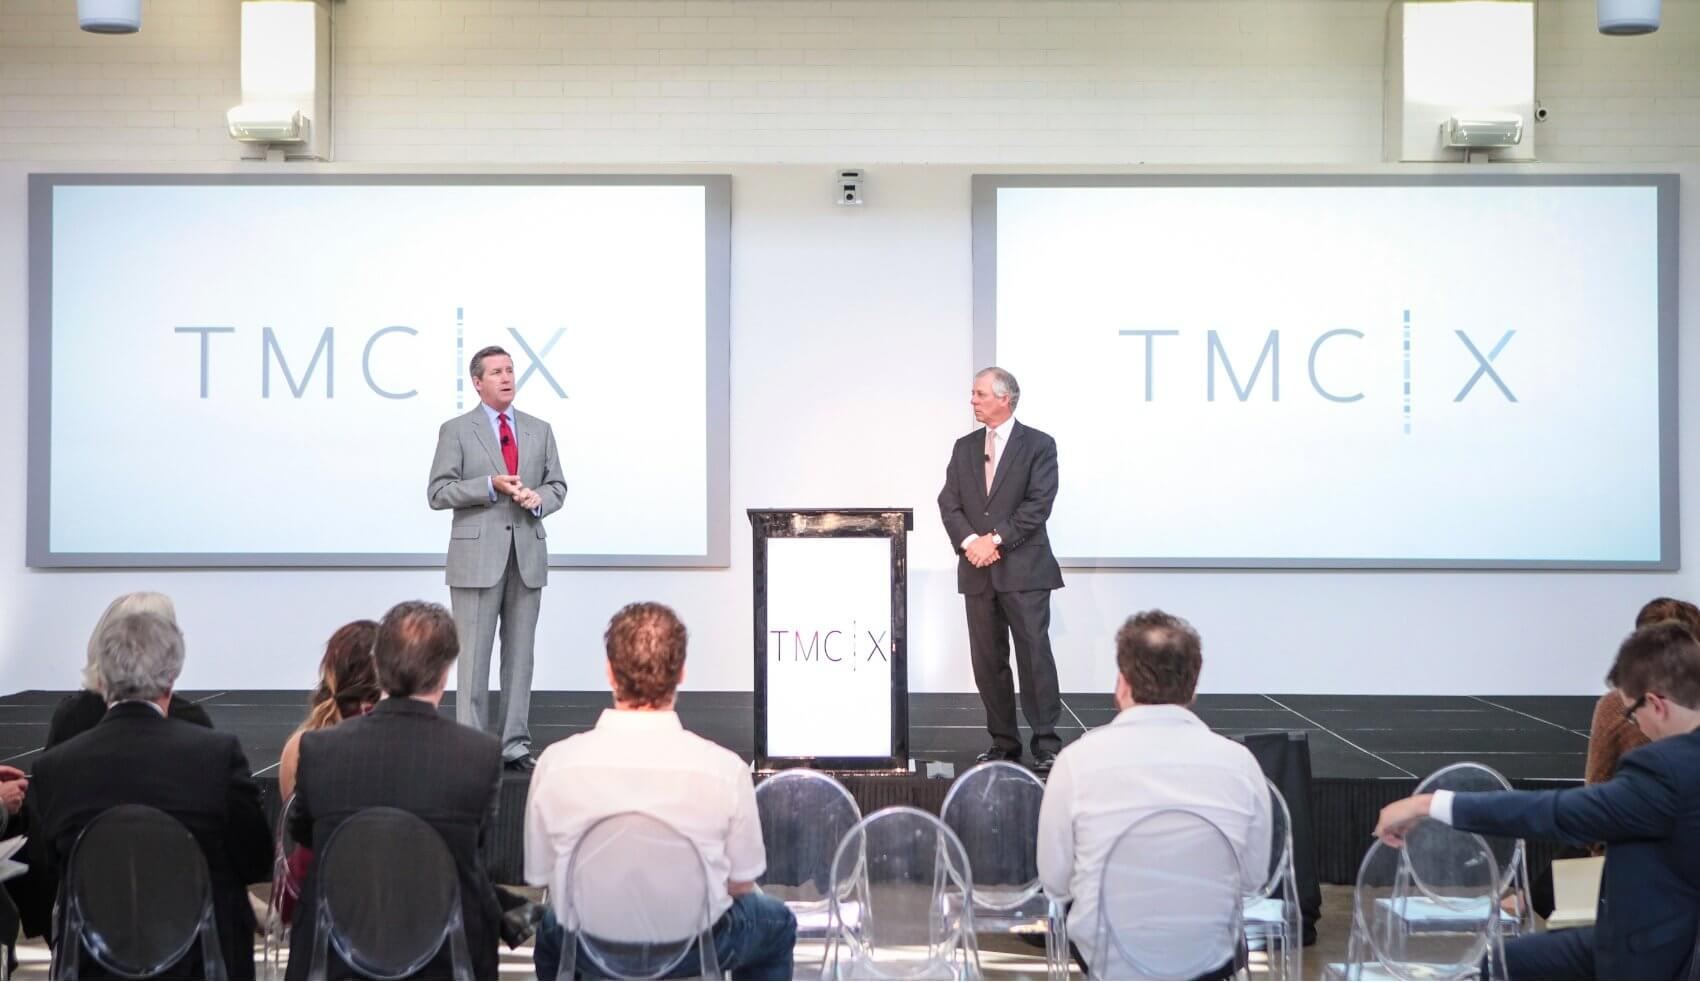 From left: William F. McKeon, Texas Medical Center chief operating officer, and Robert C. Robbins, M.D., Texas Medical Center president and chief executive officer introduce new accelerator TMCx (Credit: Nick de la Torre)